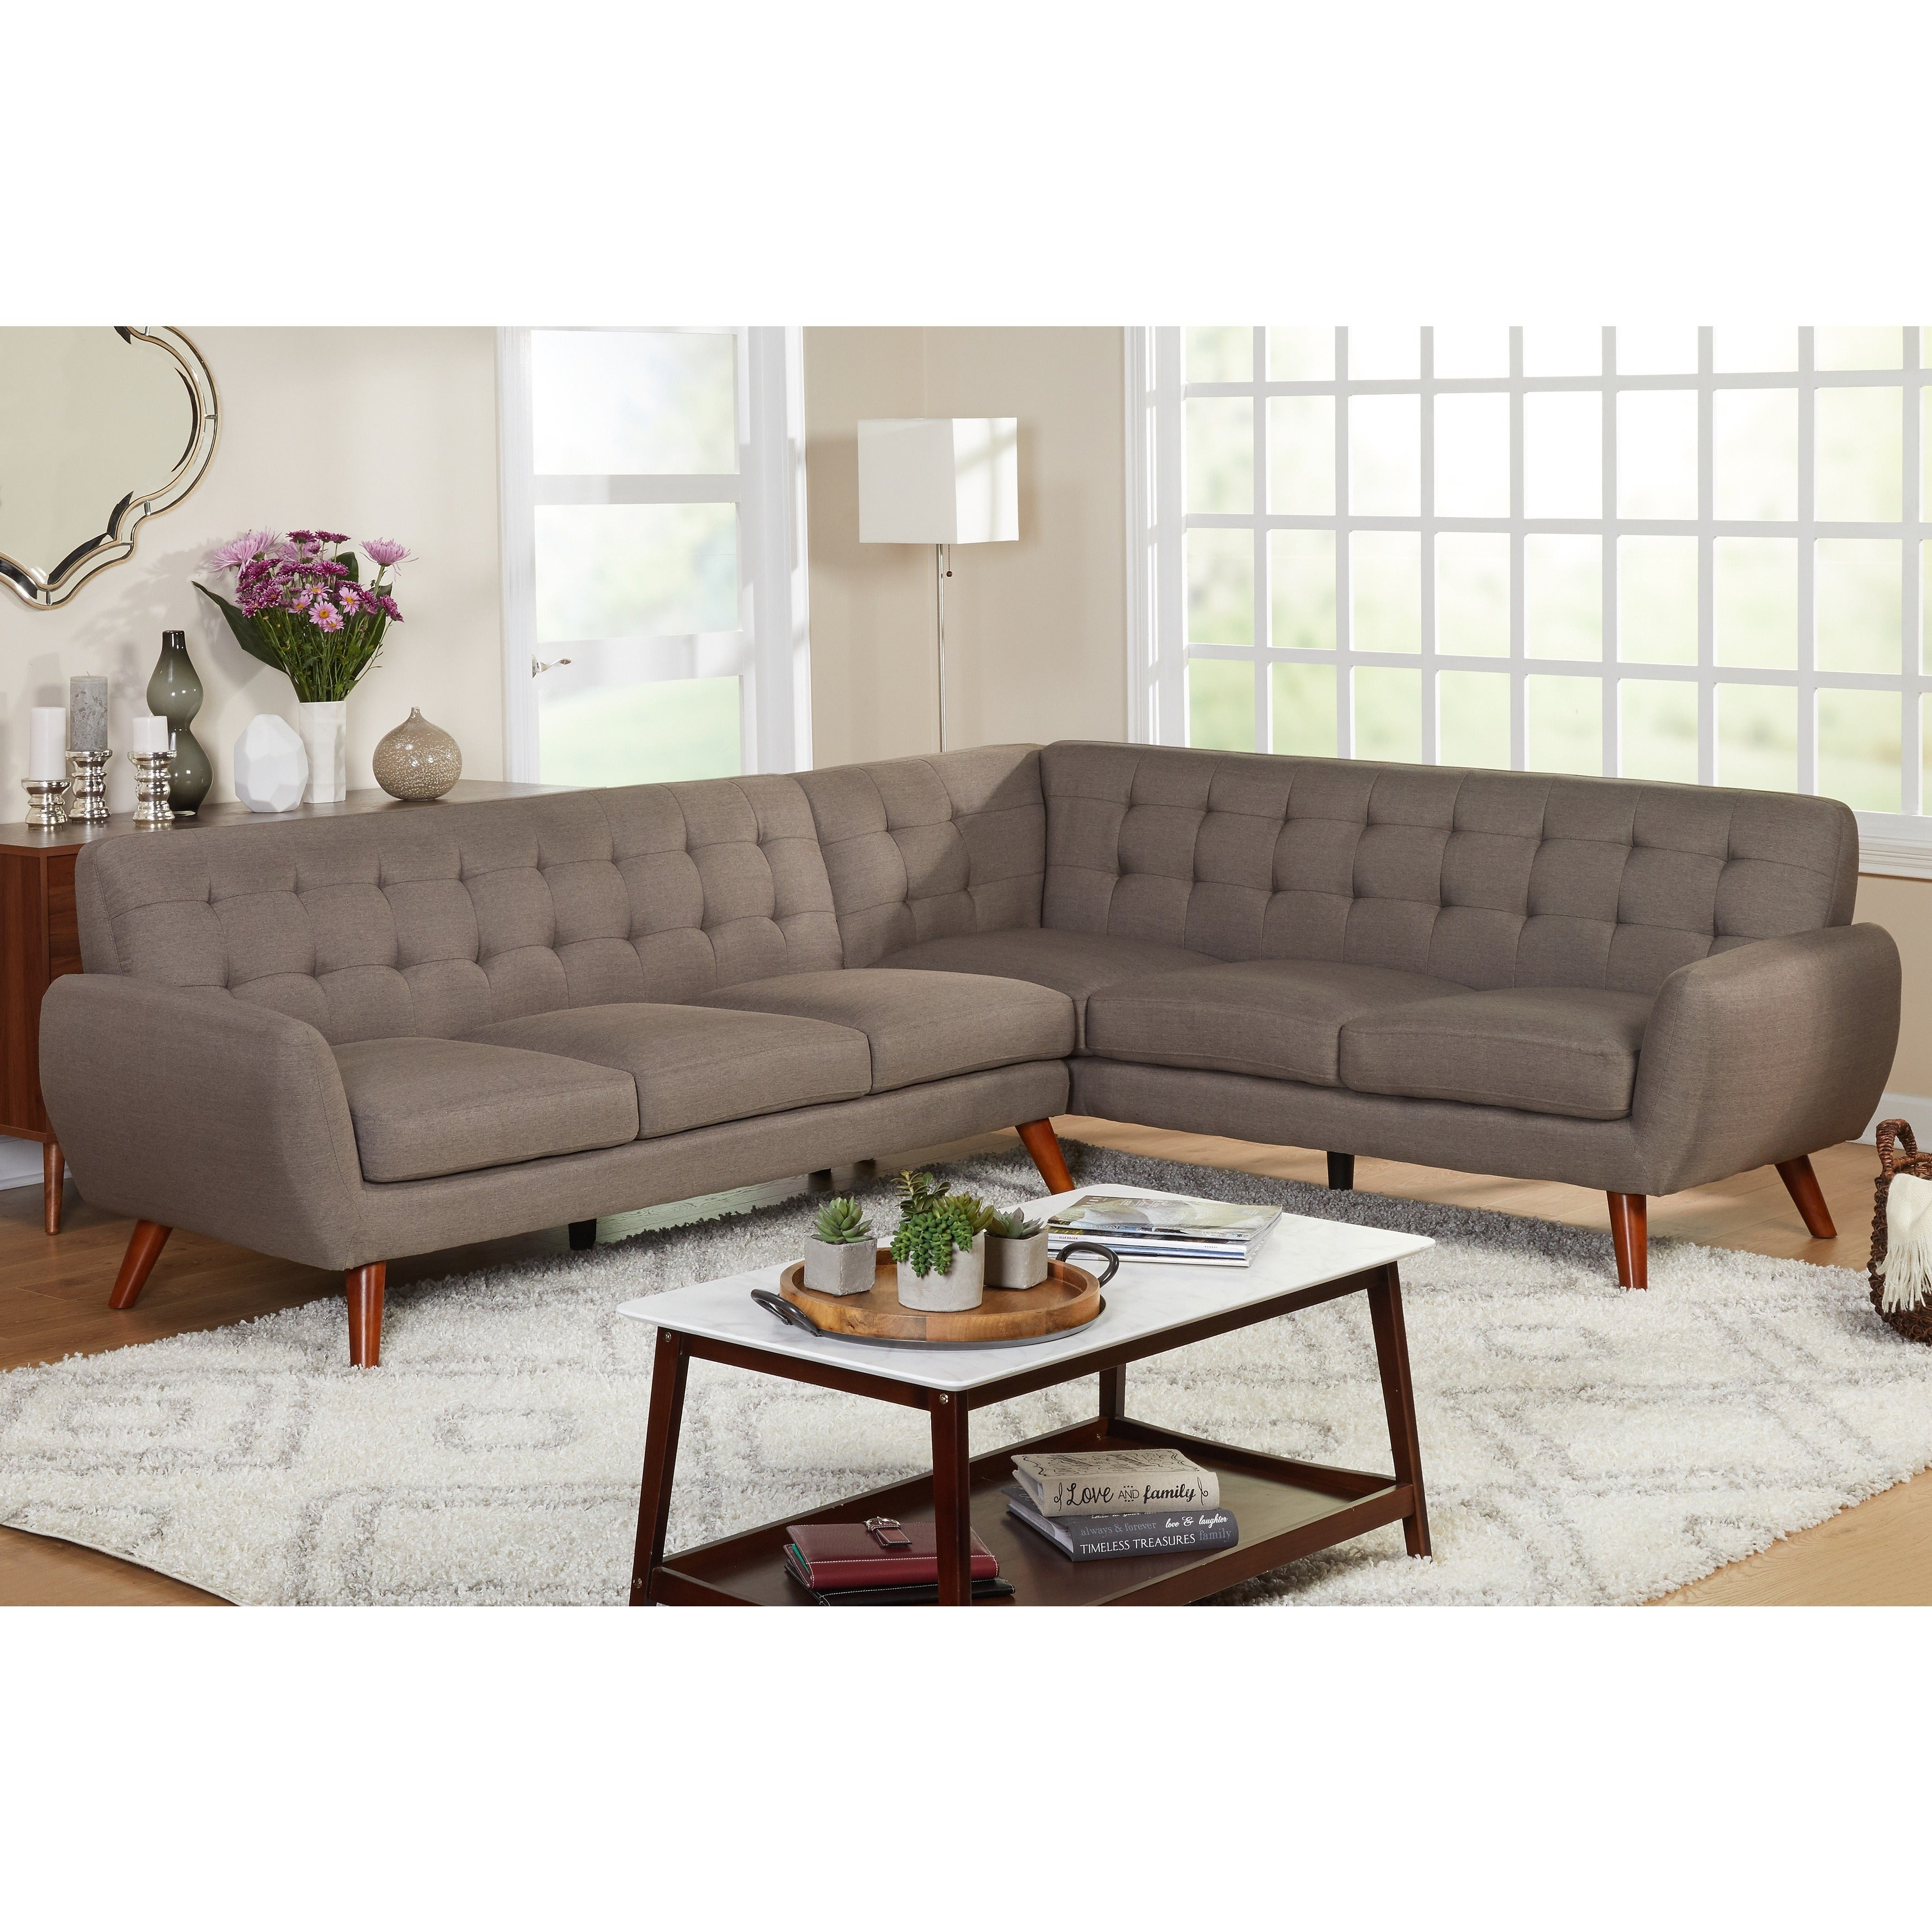 Shop Simple Living Livingston Mid Century Tufted L Shaped Sectional Sofa Free Shipping Today Overstock 14357189